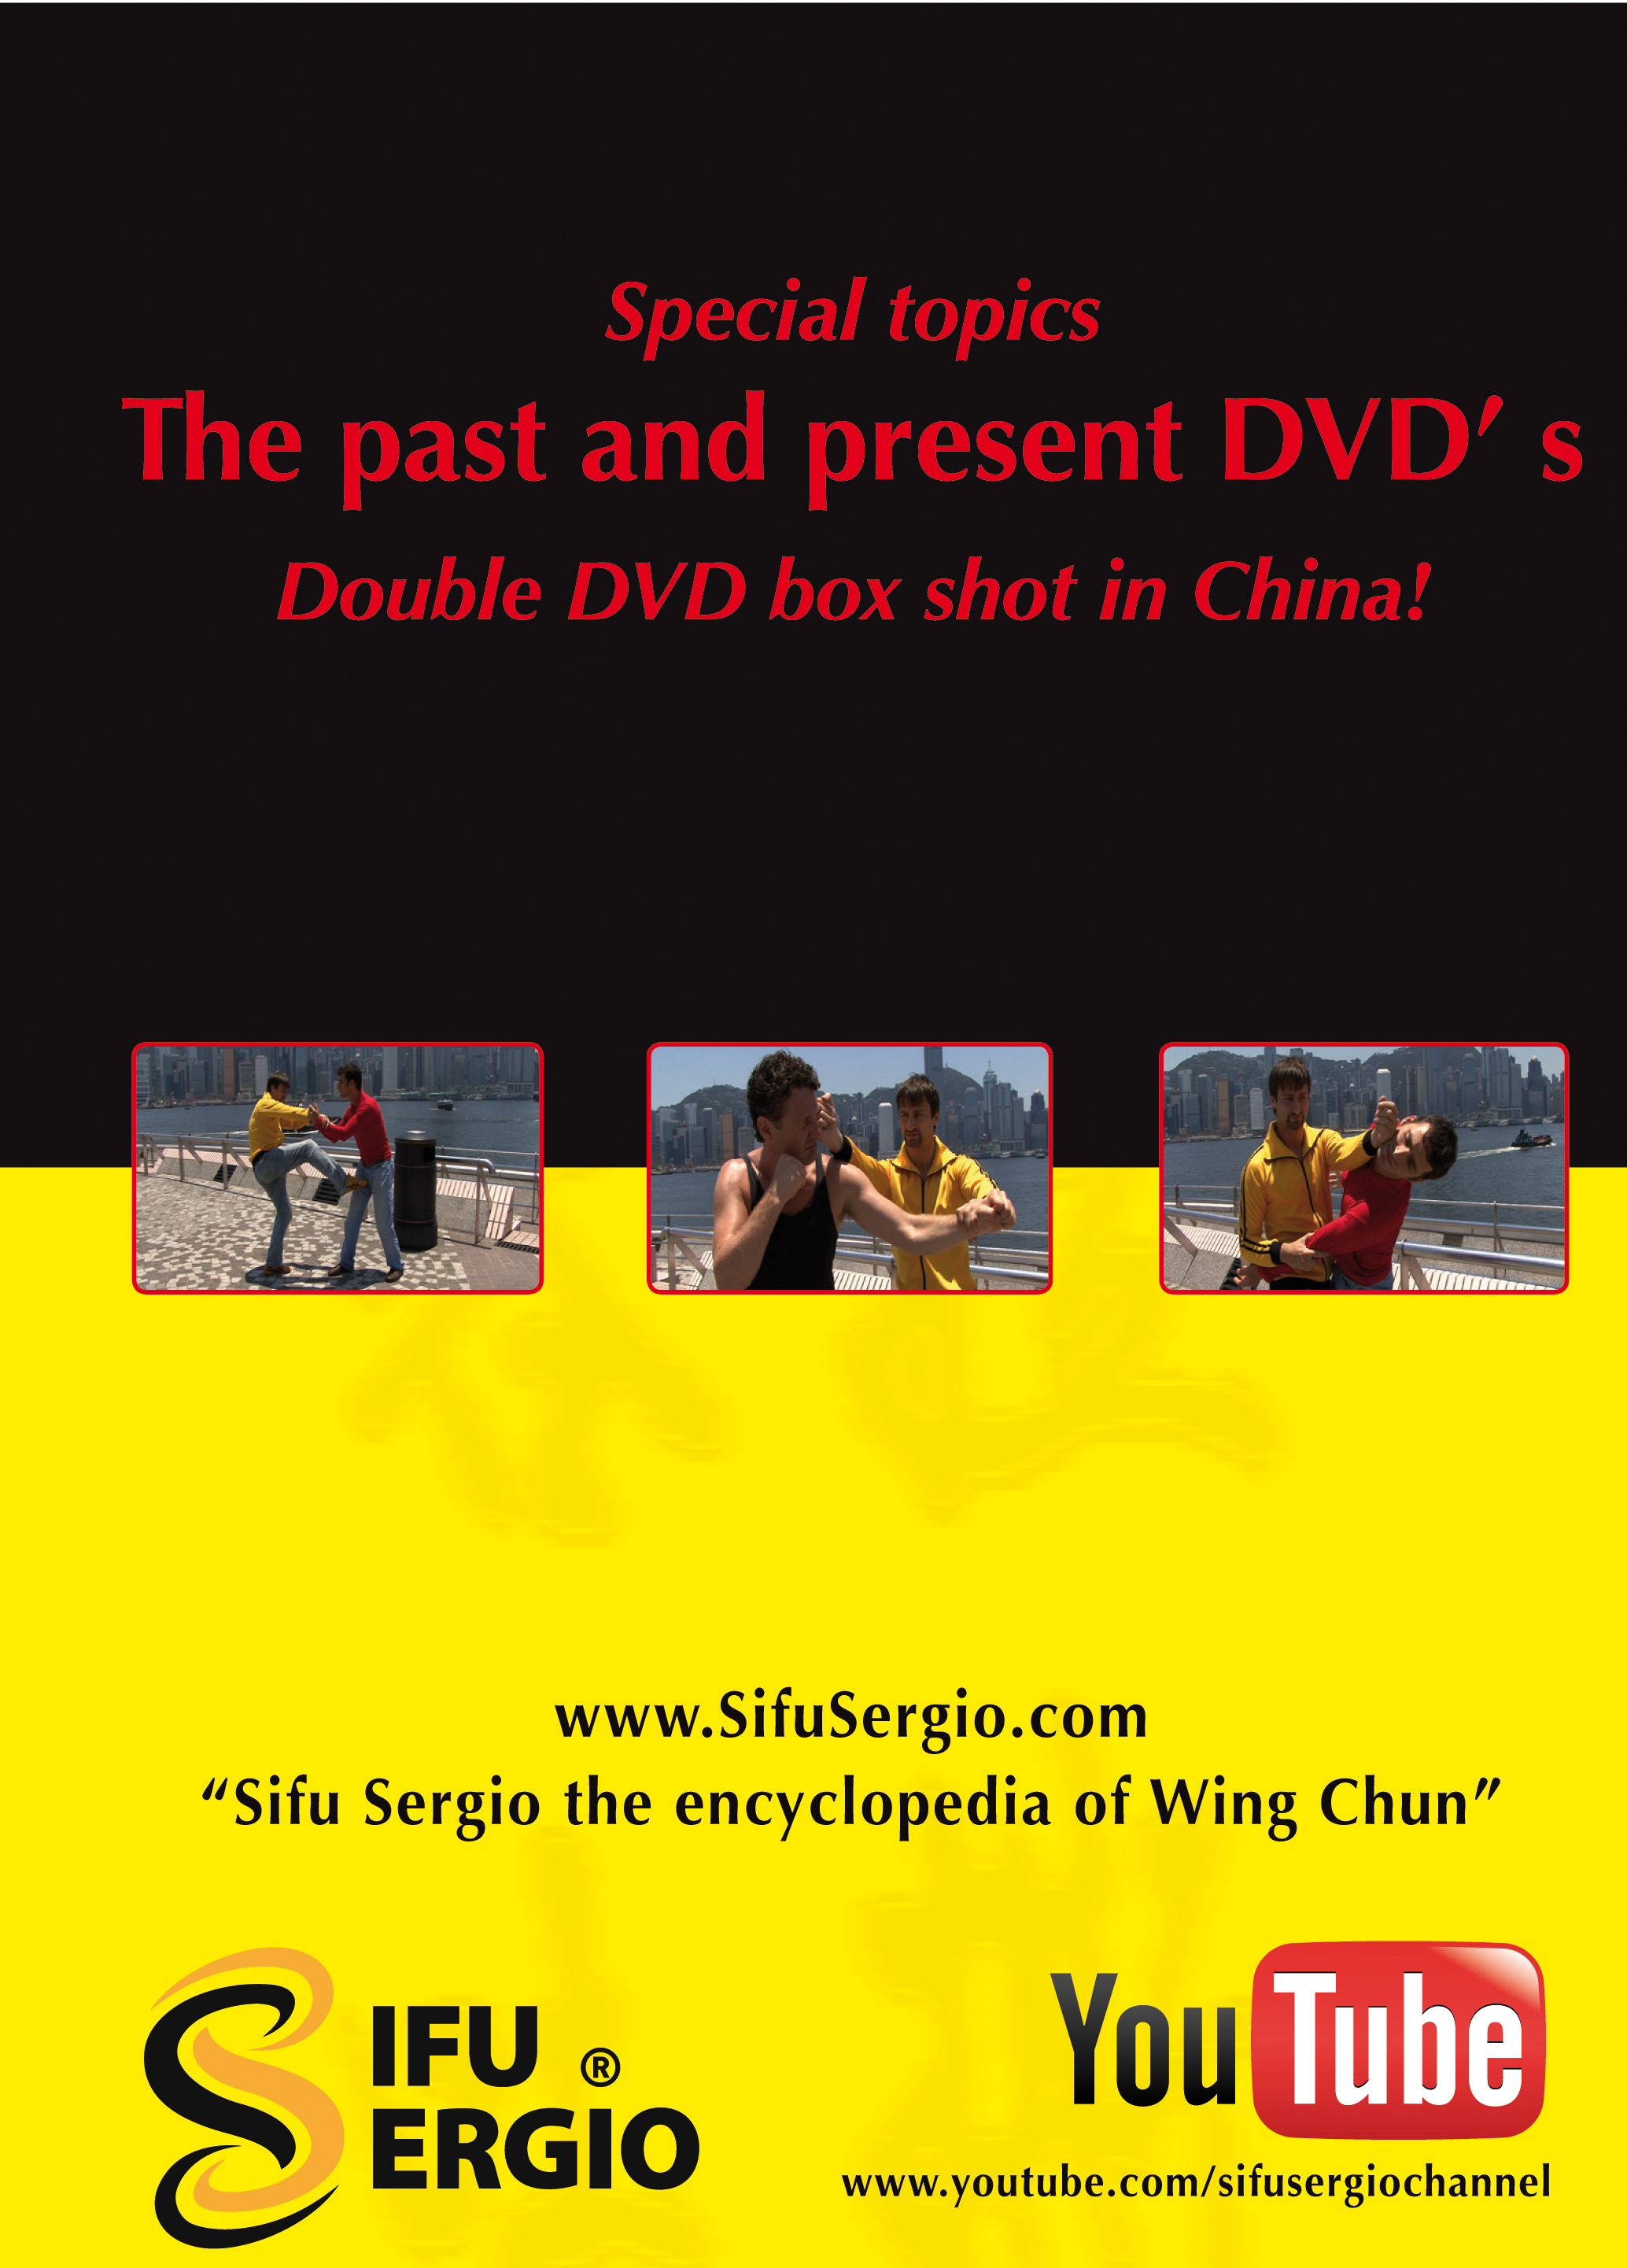 The Past and Present Double DVD